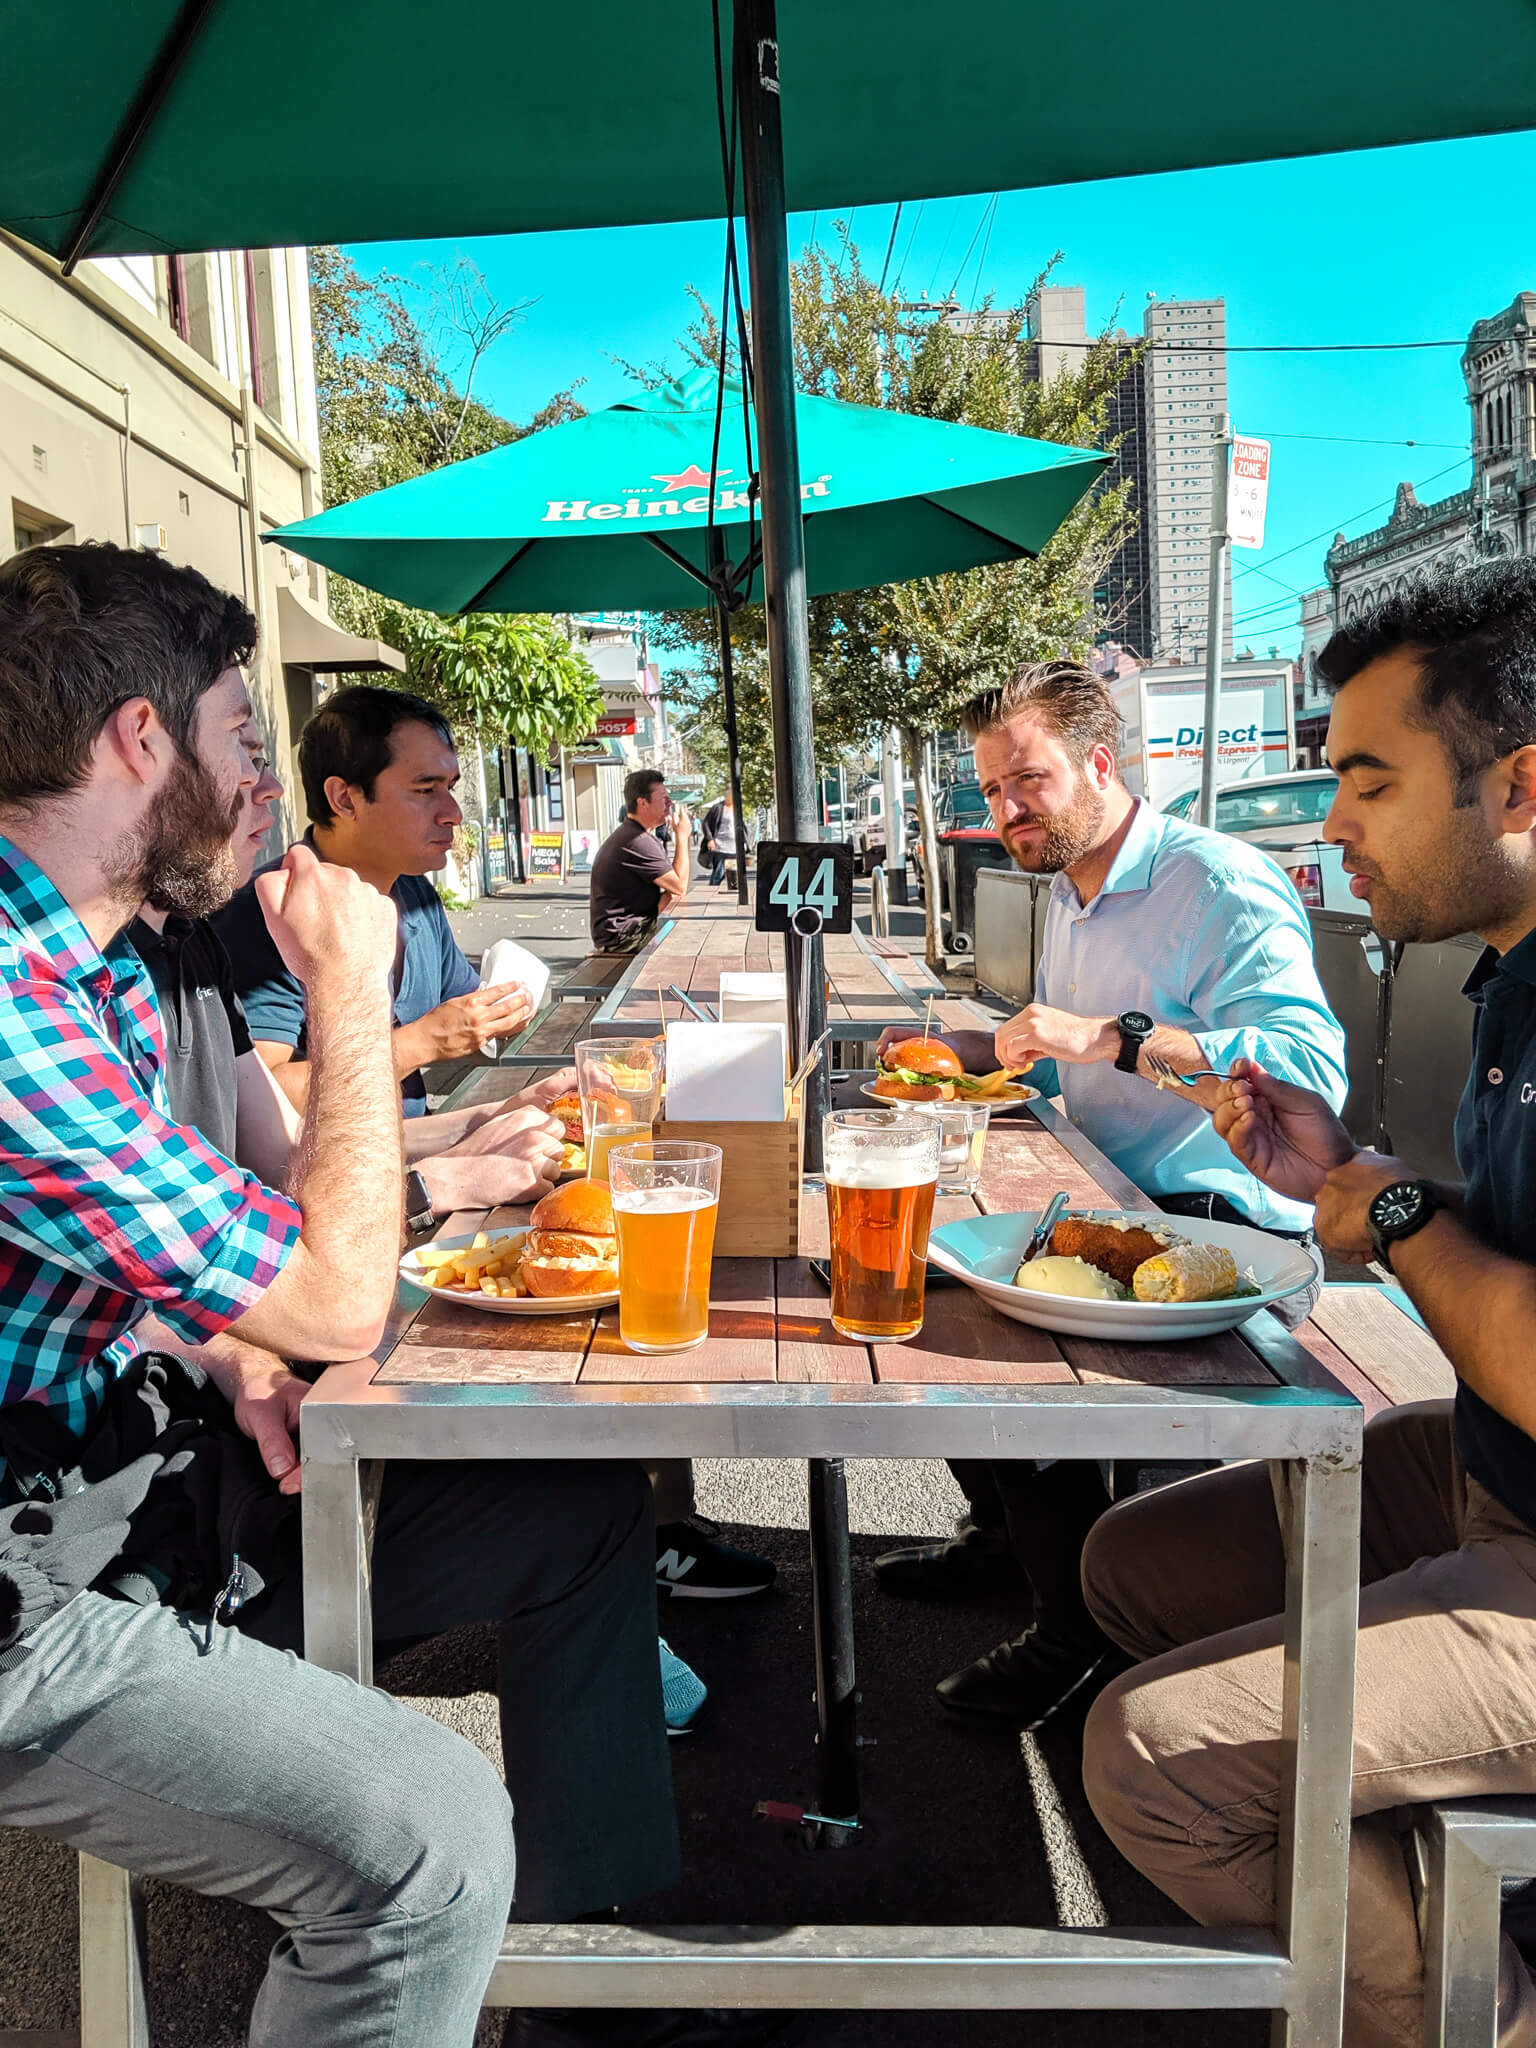 Casual office lunch, agile team lunch, work life balance, team outing, pub lunch, sharing, melbourne streets